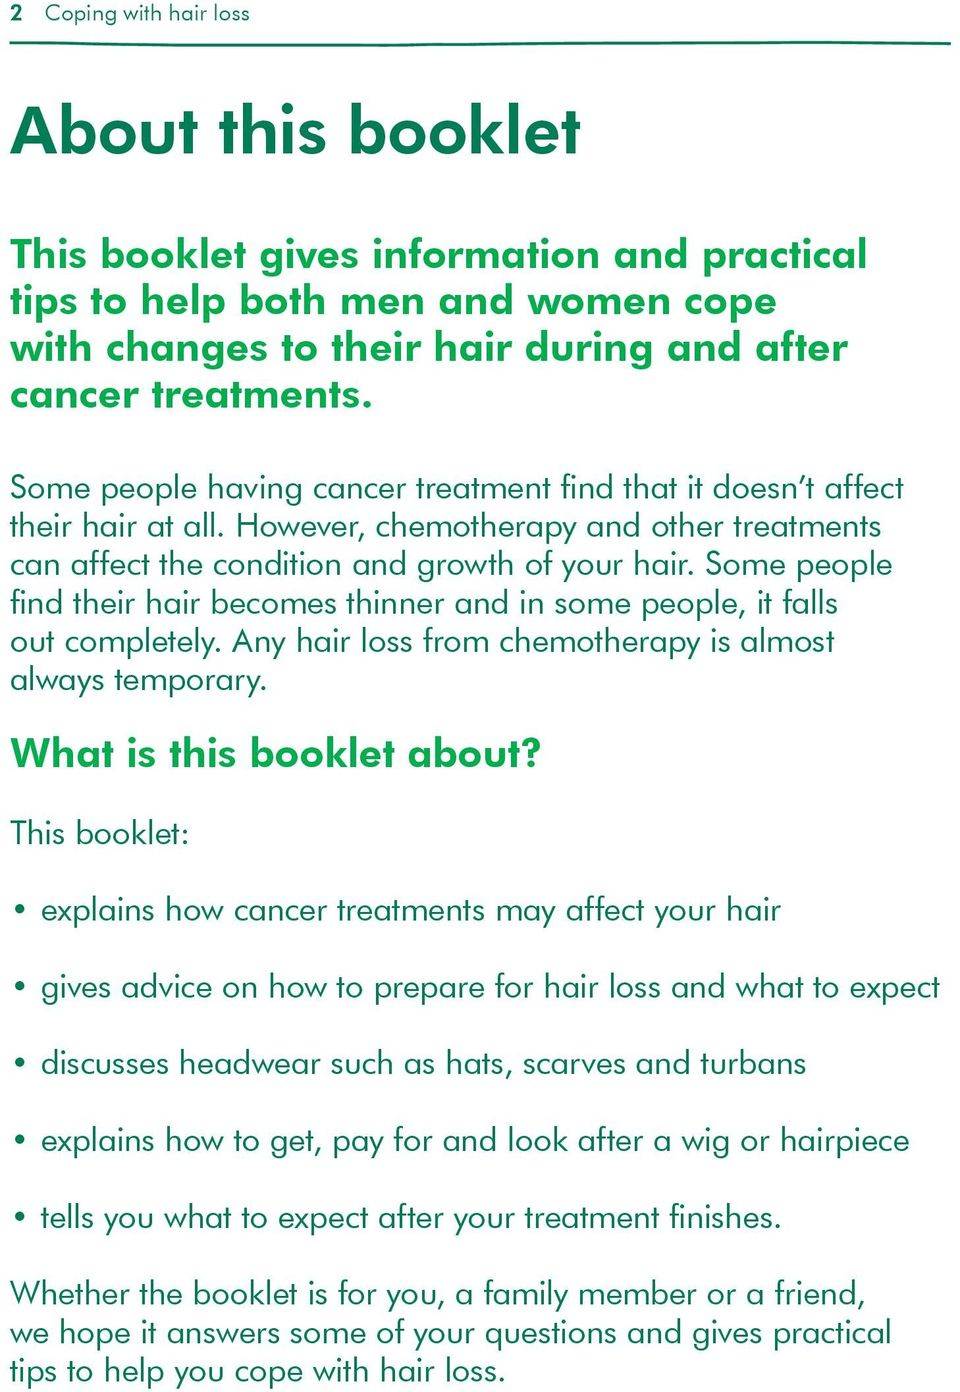 Some people find their hair becomes thinner and in some people, it falls out completely. Any hair loss from chemotherapy is almost always temporary. What is this booklet about?